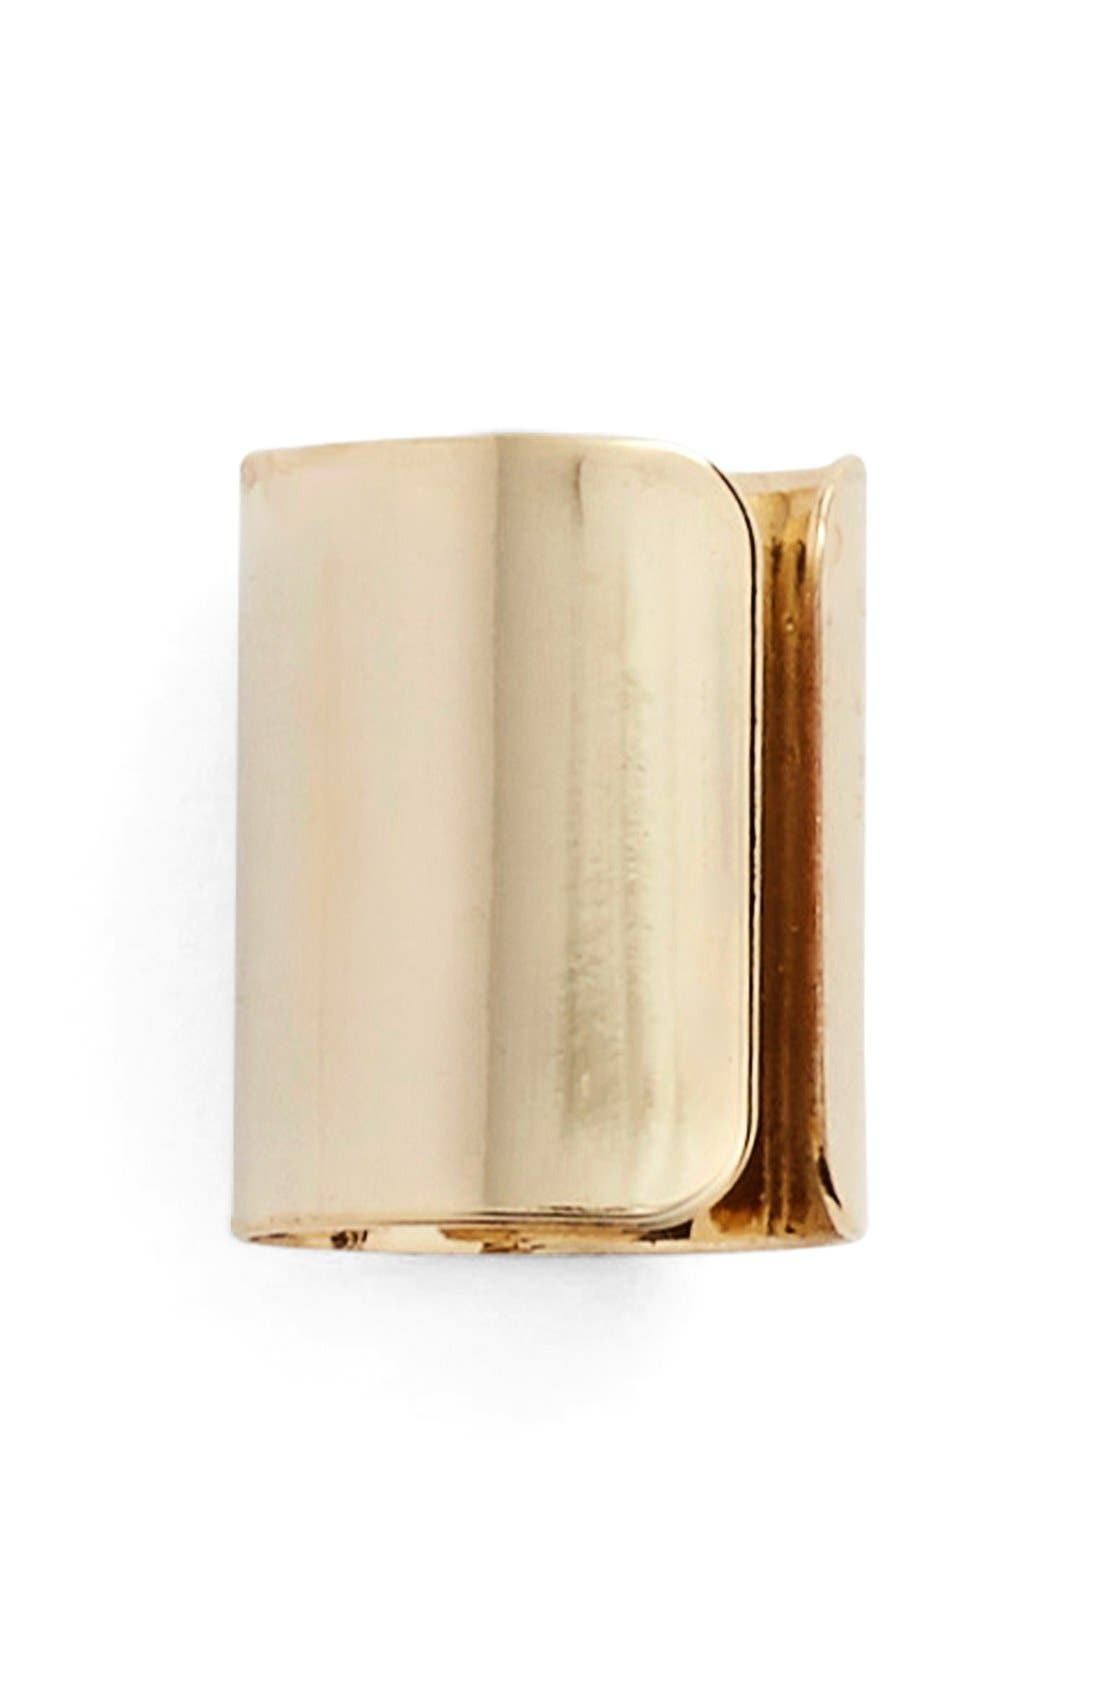 Alternate Image 1 Selected - Jules Smith Cigar Band Cuff Earring